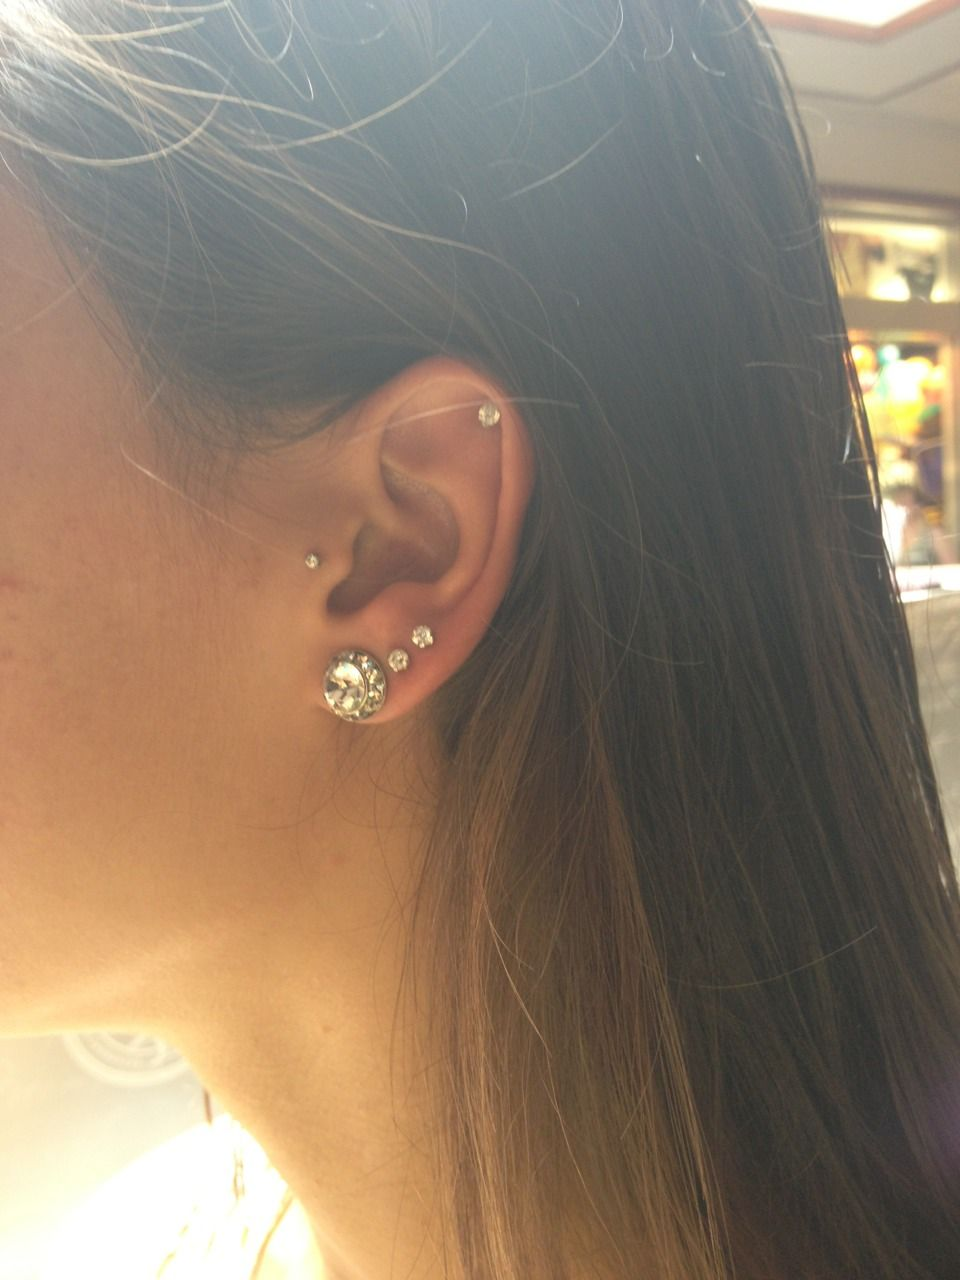 Nose piercing without earring  Double helix piercing  Earrings  Pinterest  Double helix piercing